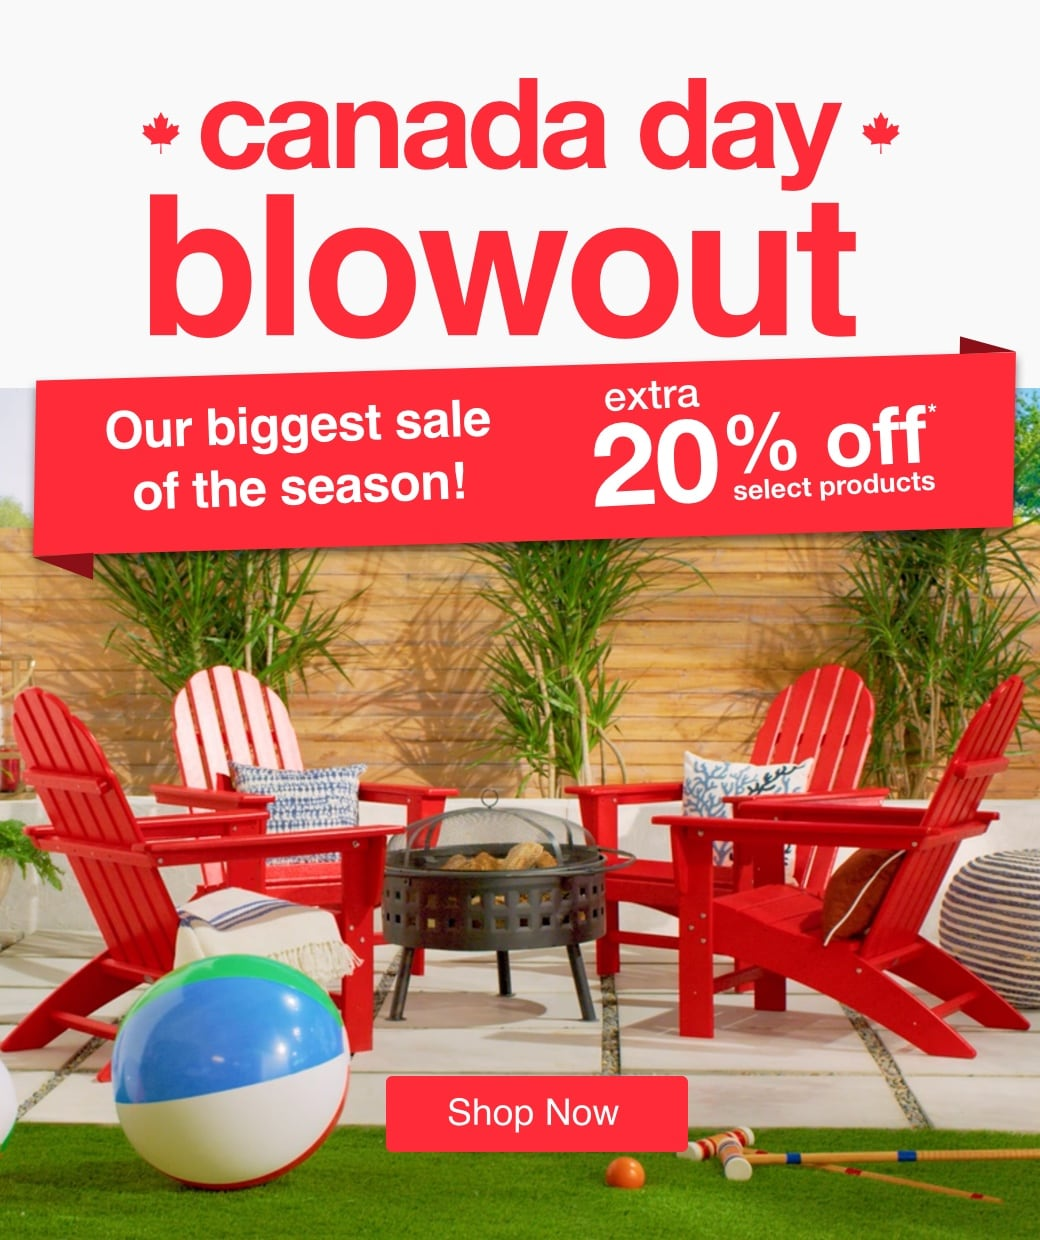 Canada Day Blowout